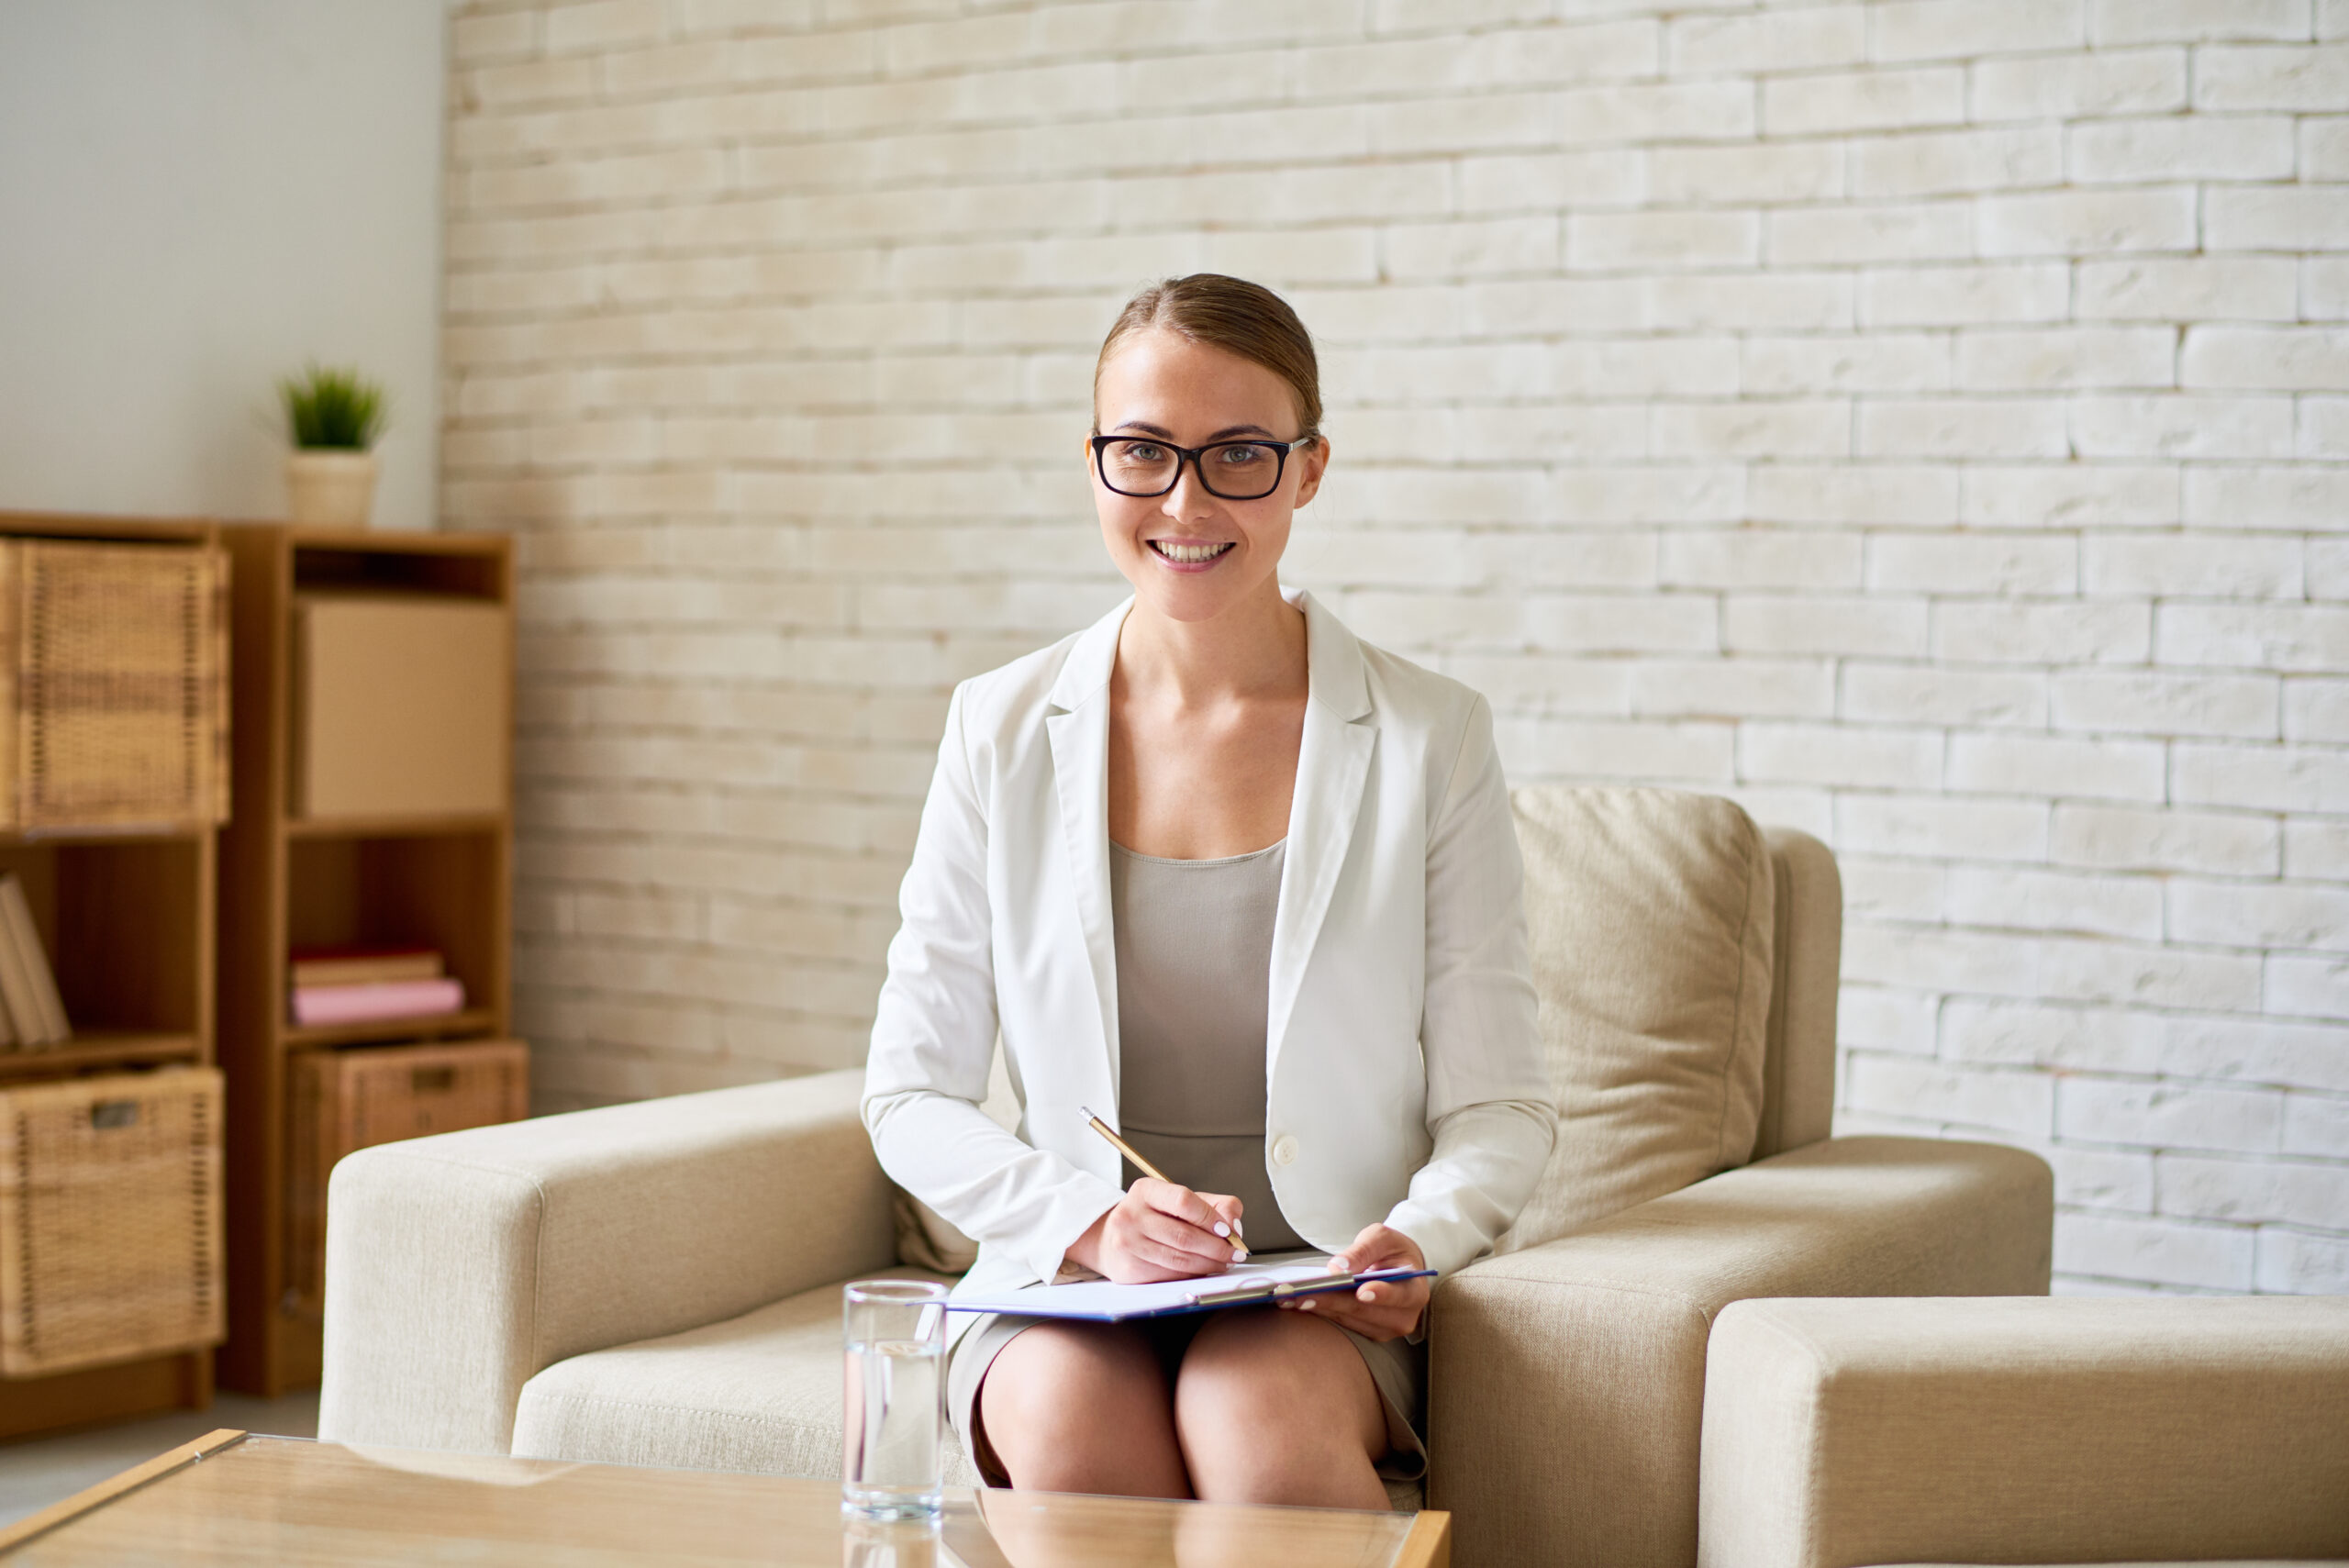 Portrait of beautiful young psychologist looking at camera with charming smile while taking notes on clipboard, interior of cozy office on background